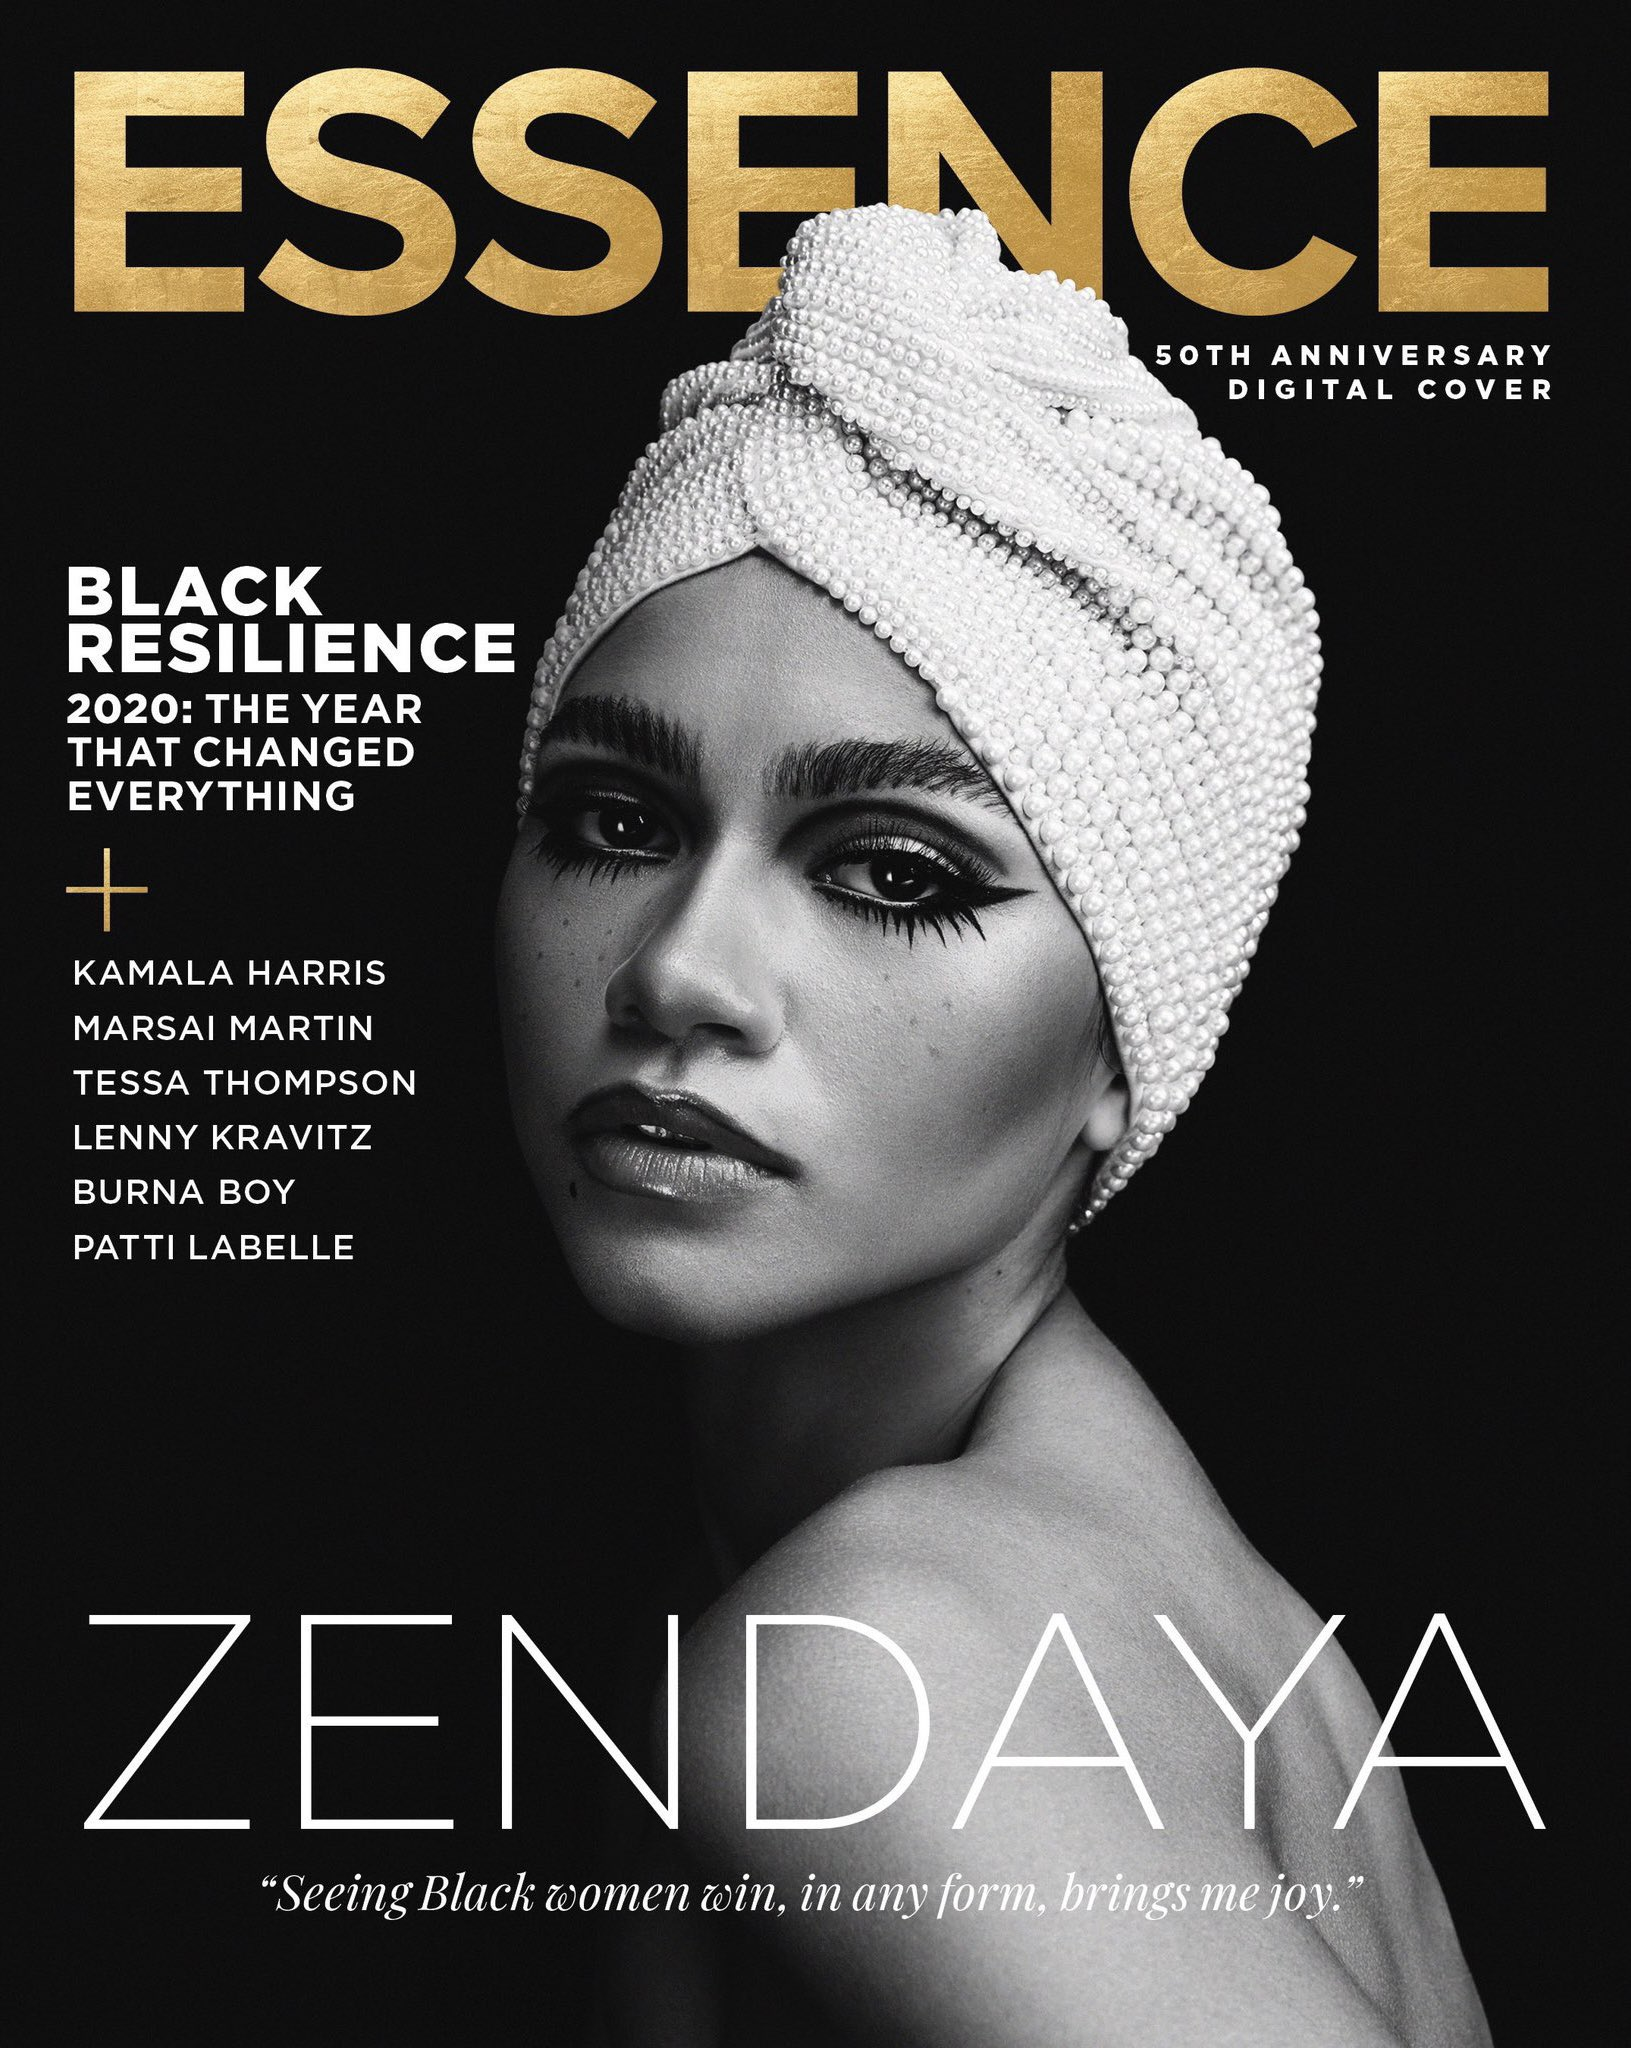 Happy Birthday to my favorite cover girl